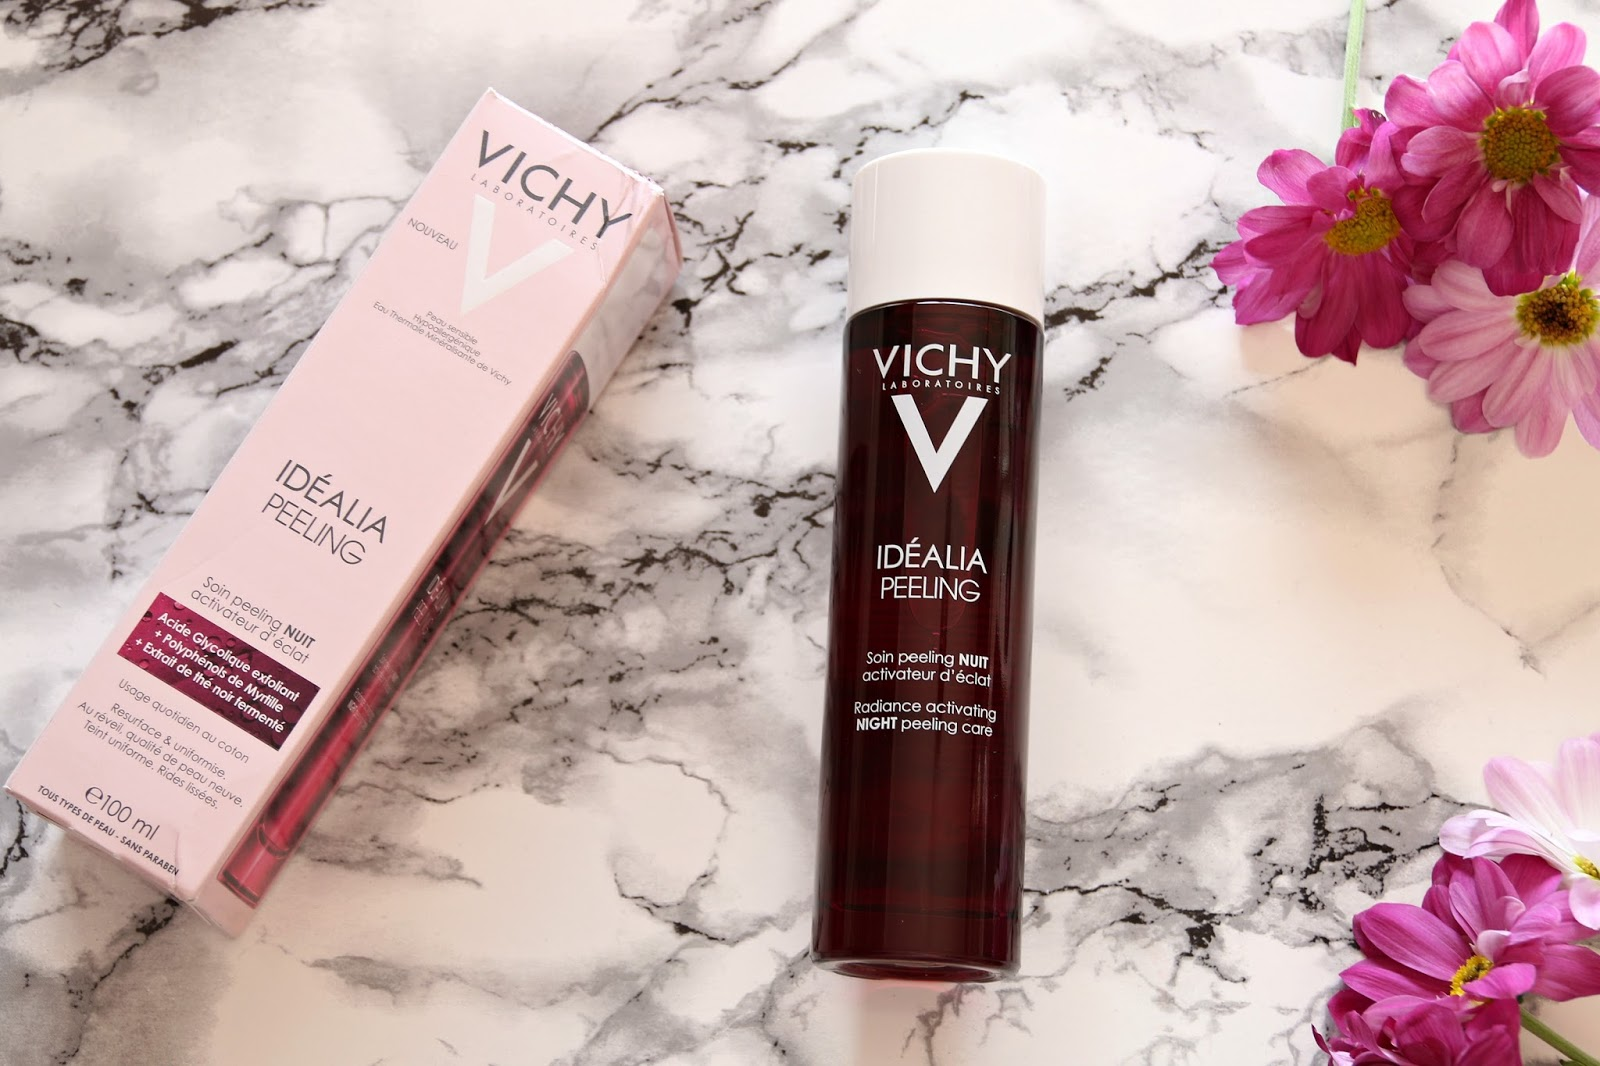 VICHY Idéalia Peeling Review: Perfect Overnight Peel for Sensitive Skin!